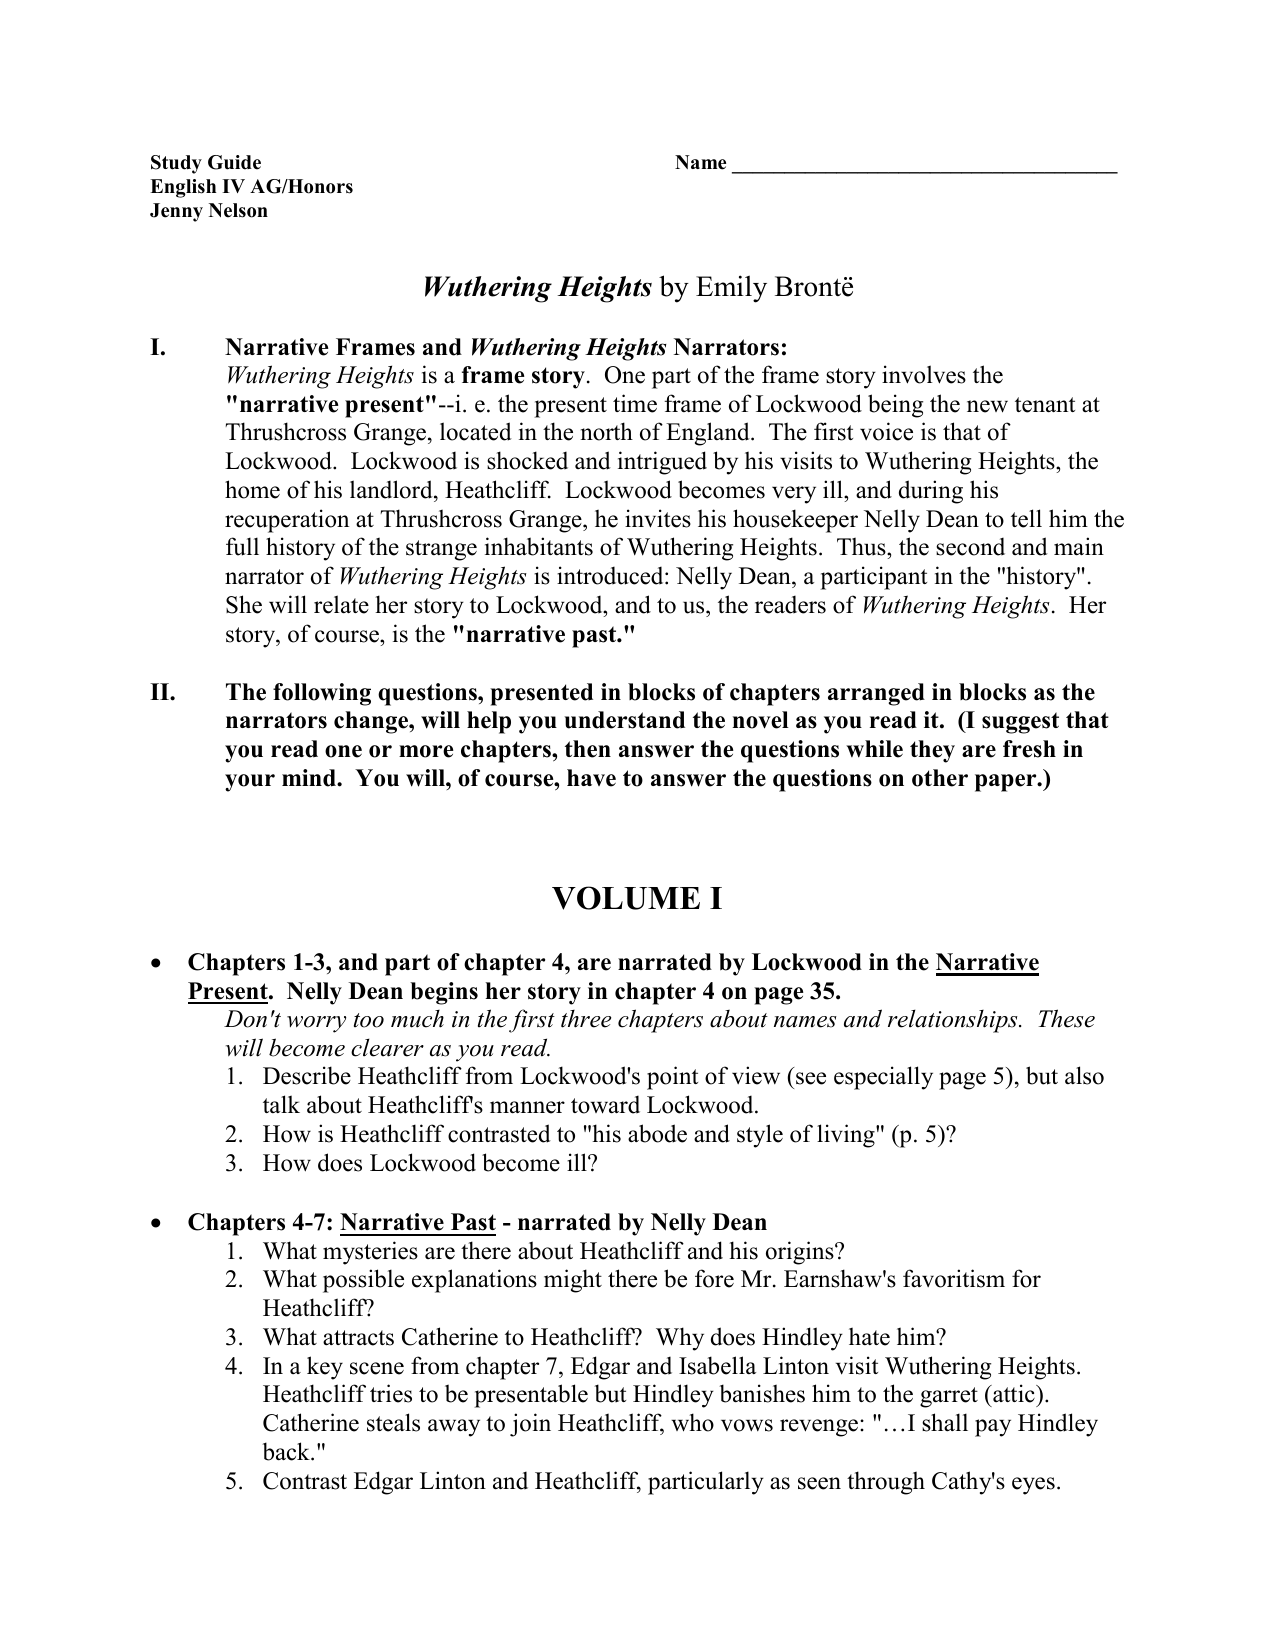 wuthering heights practice essay questions Free wuthering heights papers, essays - wuthering heights essay i have never been to this temple before because my family does not practice buddhism.